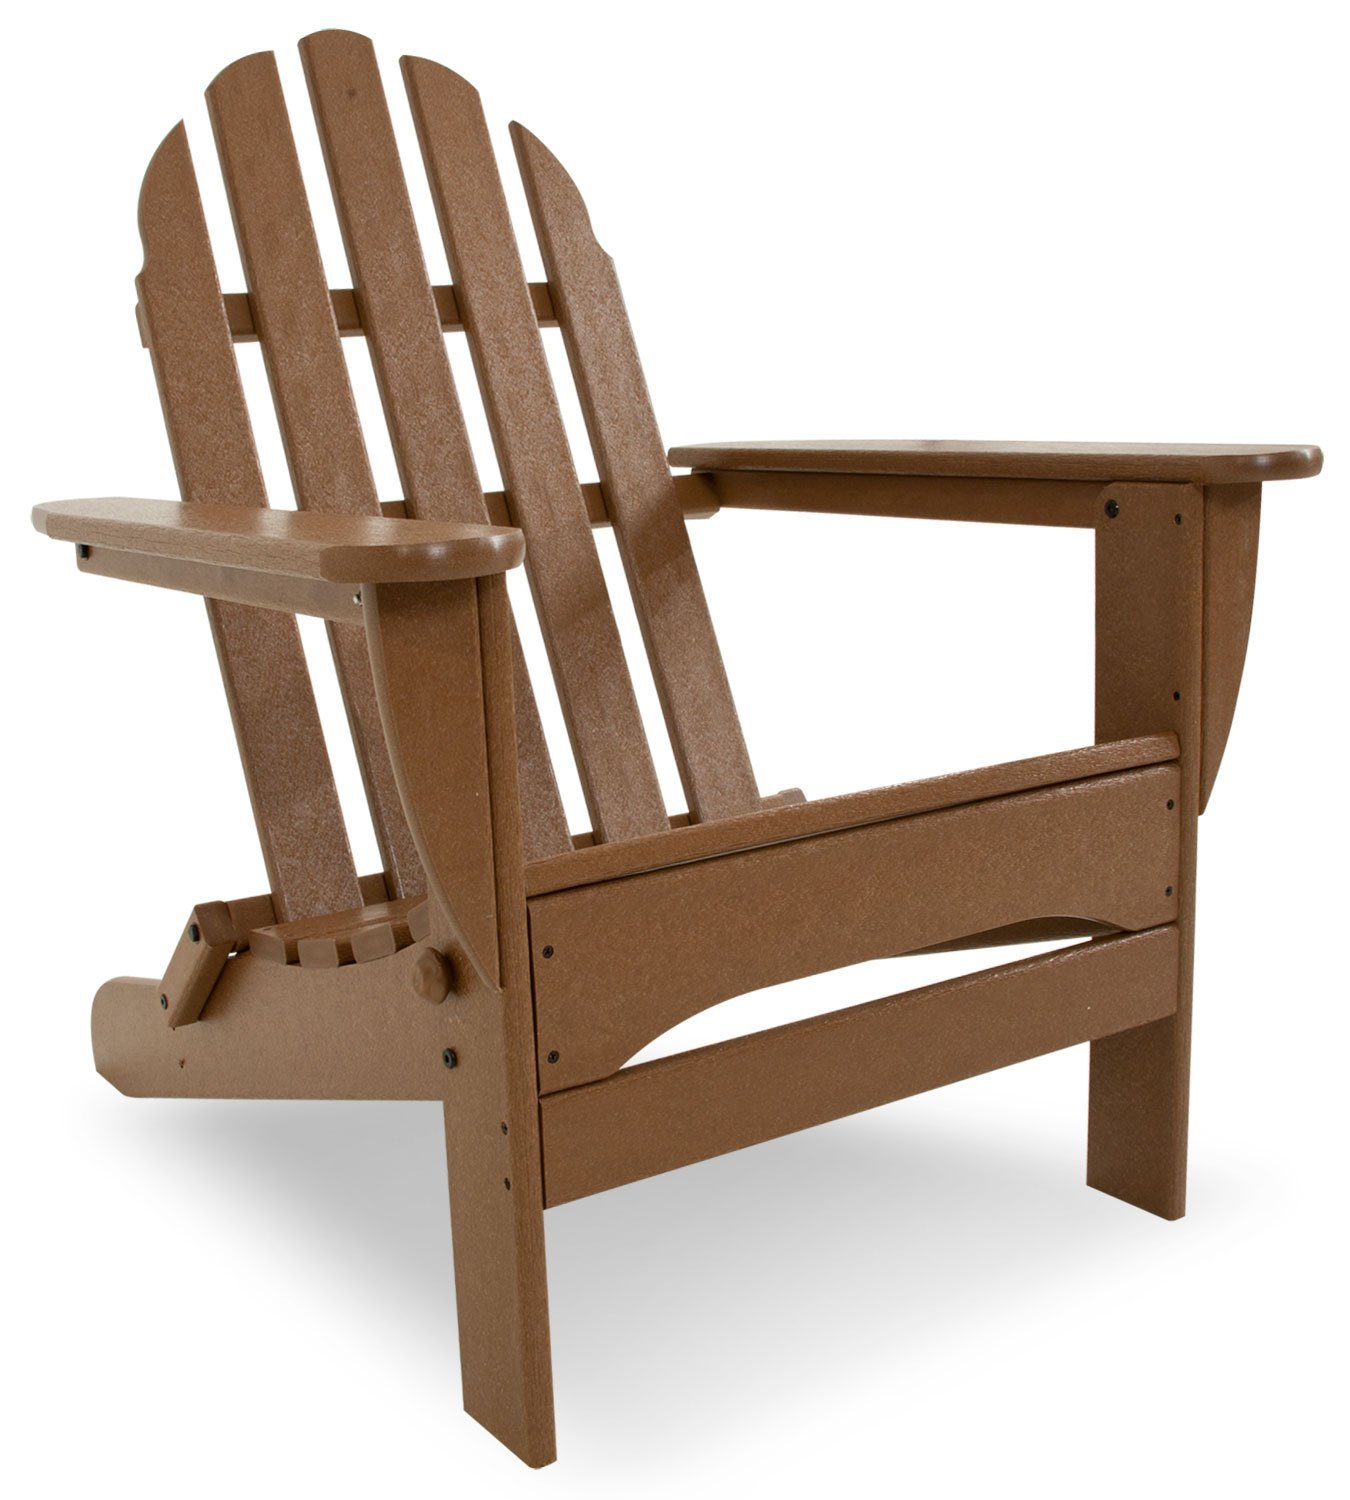 charming and unique teak adirondack chairs for outdoor or patio furniture ideas teak adirondack chairs